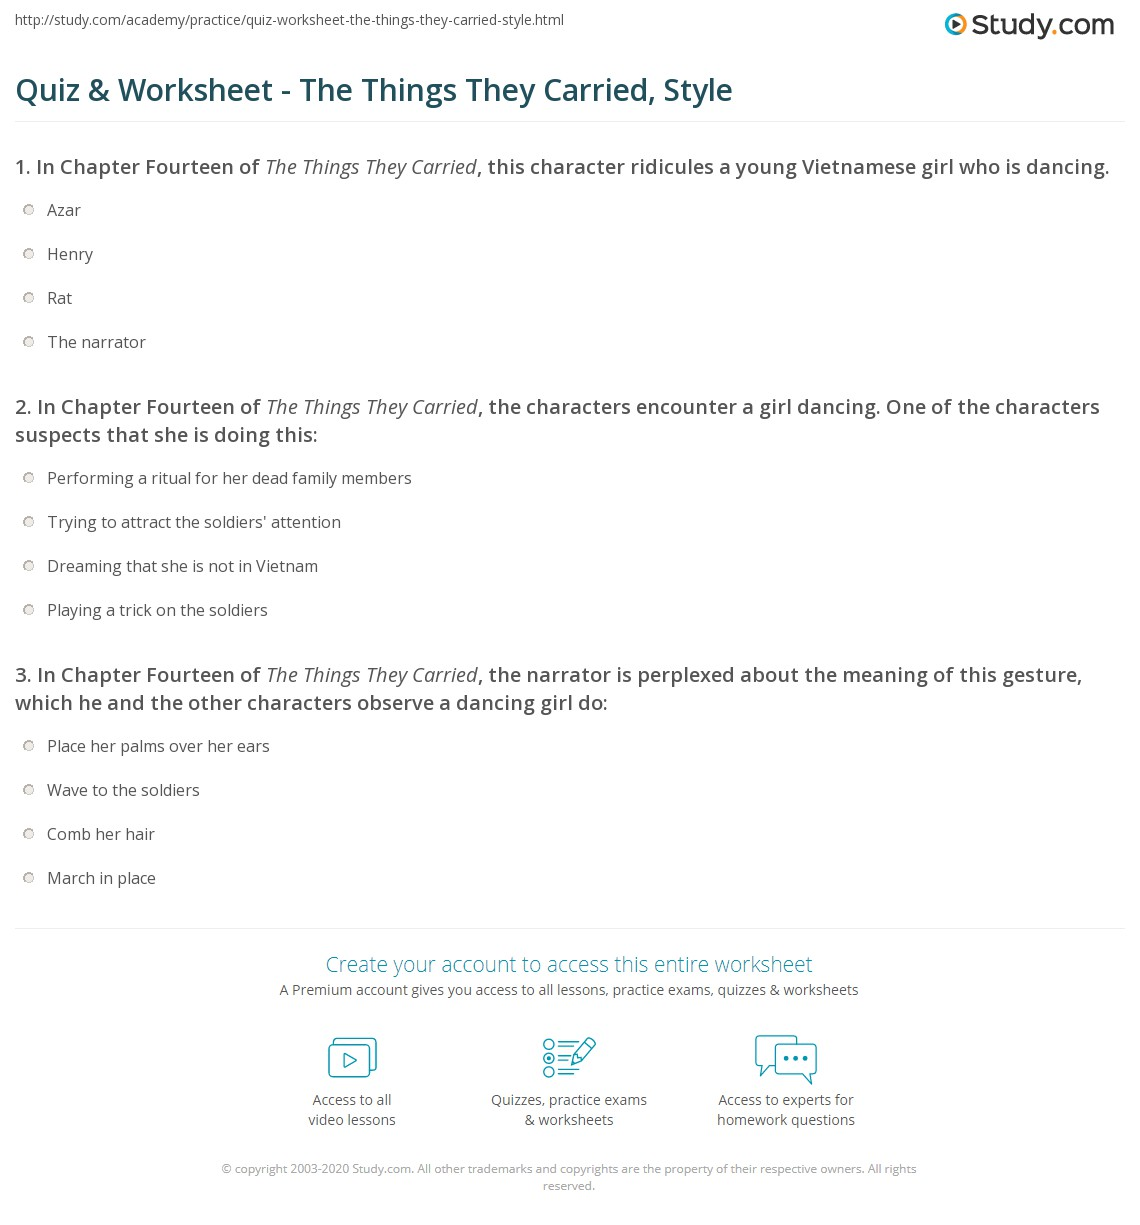 quiz worksheet the things they carried style com print the things they carried chapter 14 style summary worksheet